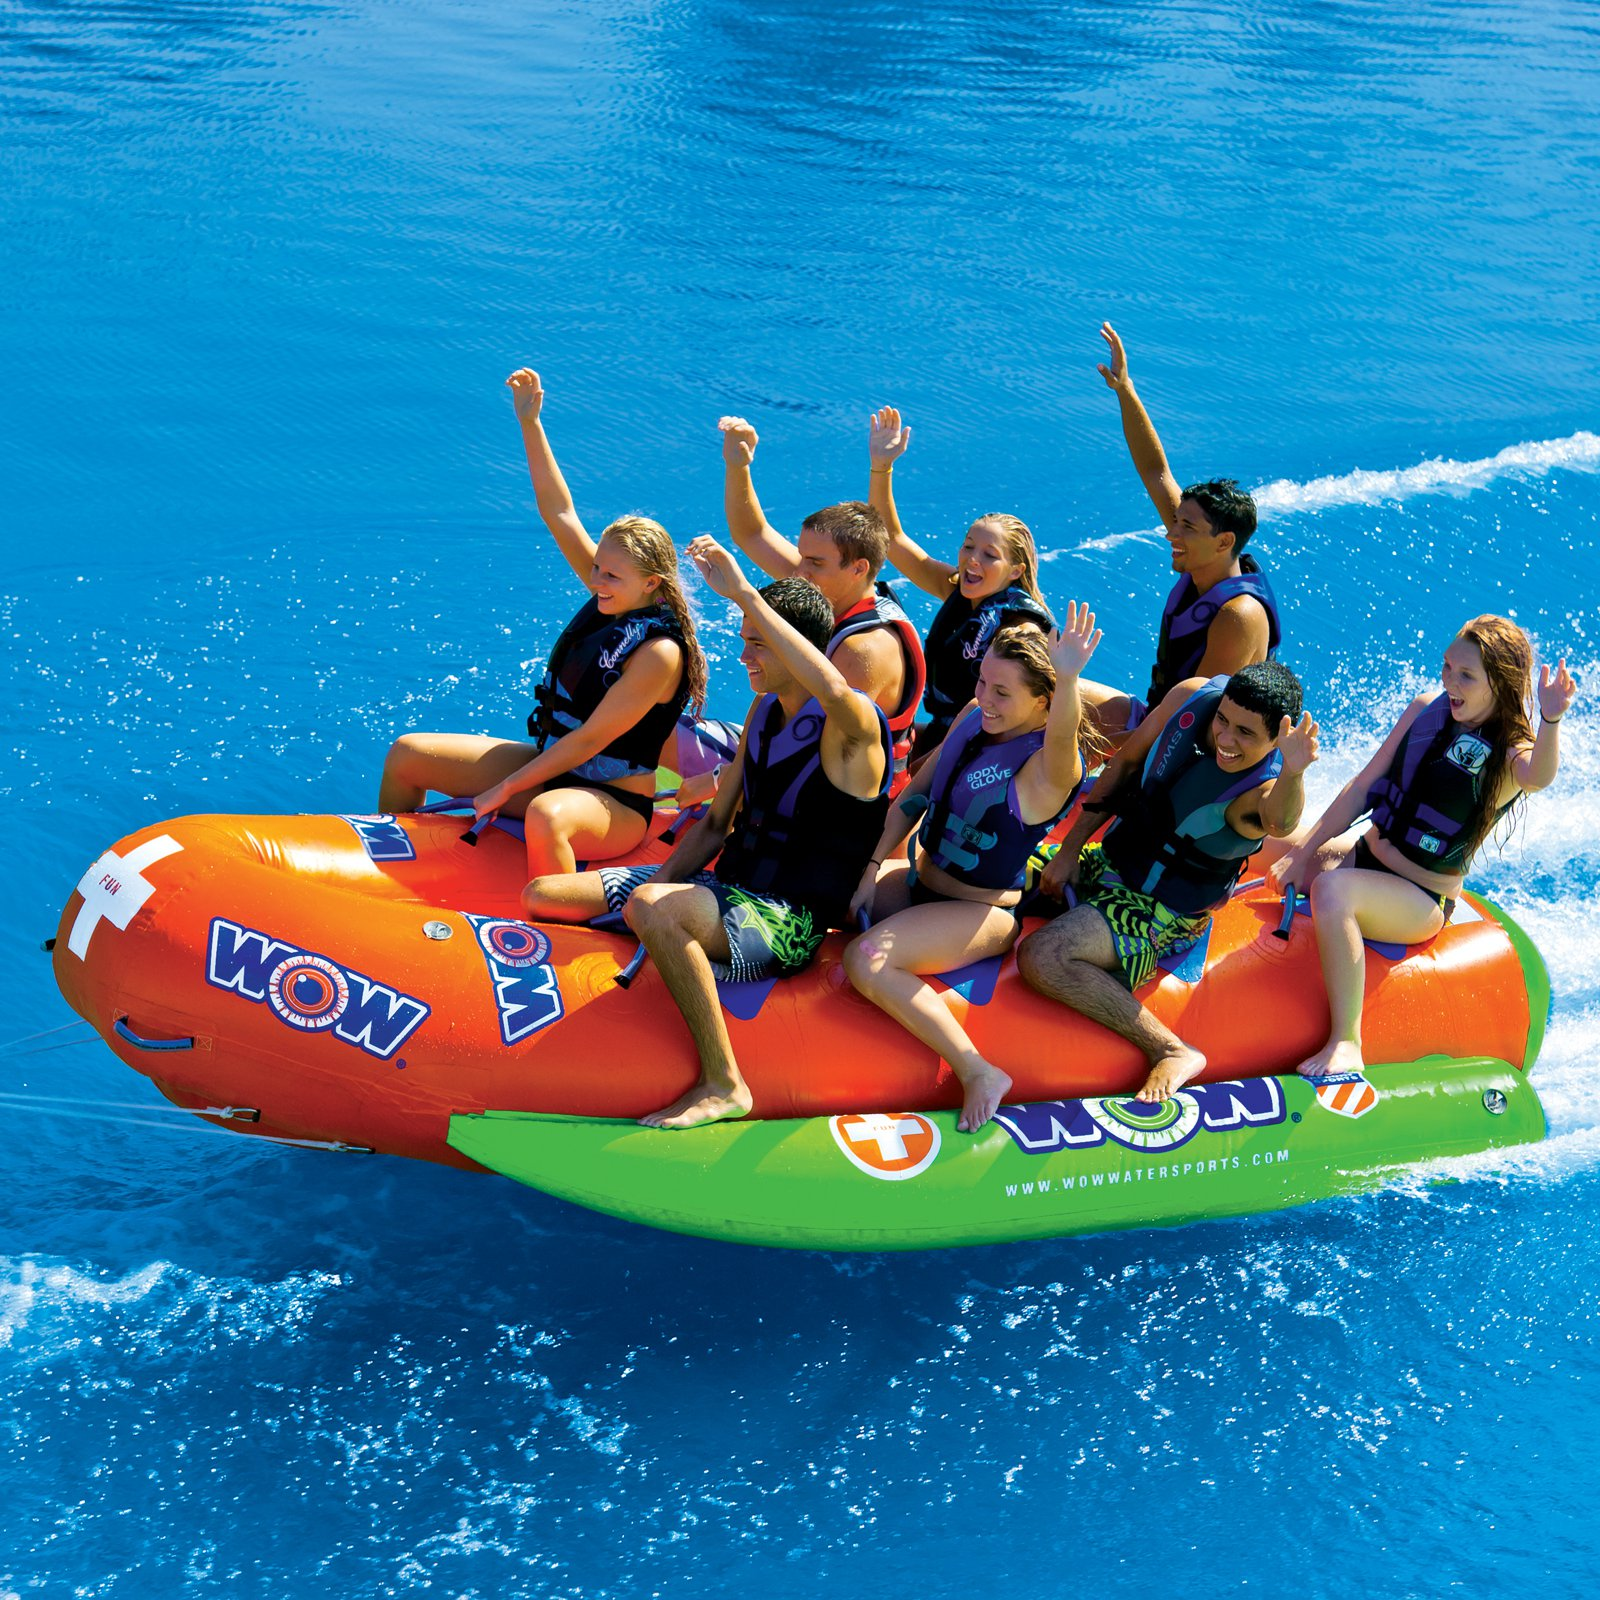 8-Person Closed Bow Banana Boat by Wow Sports